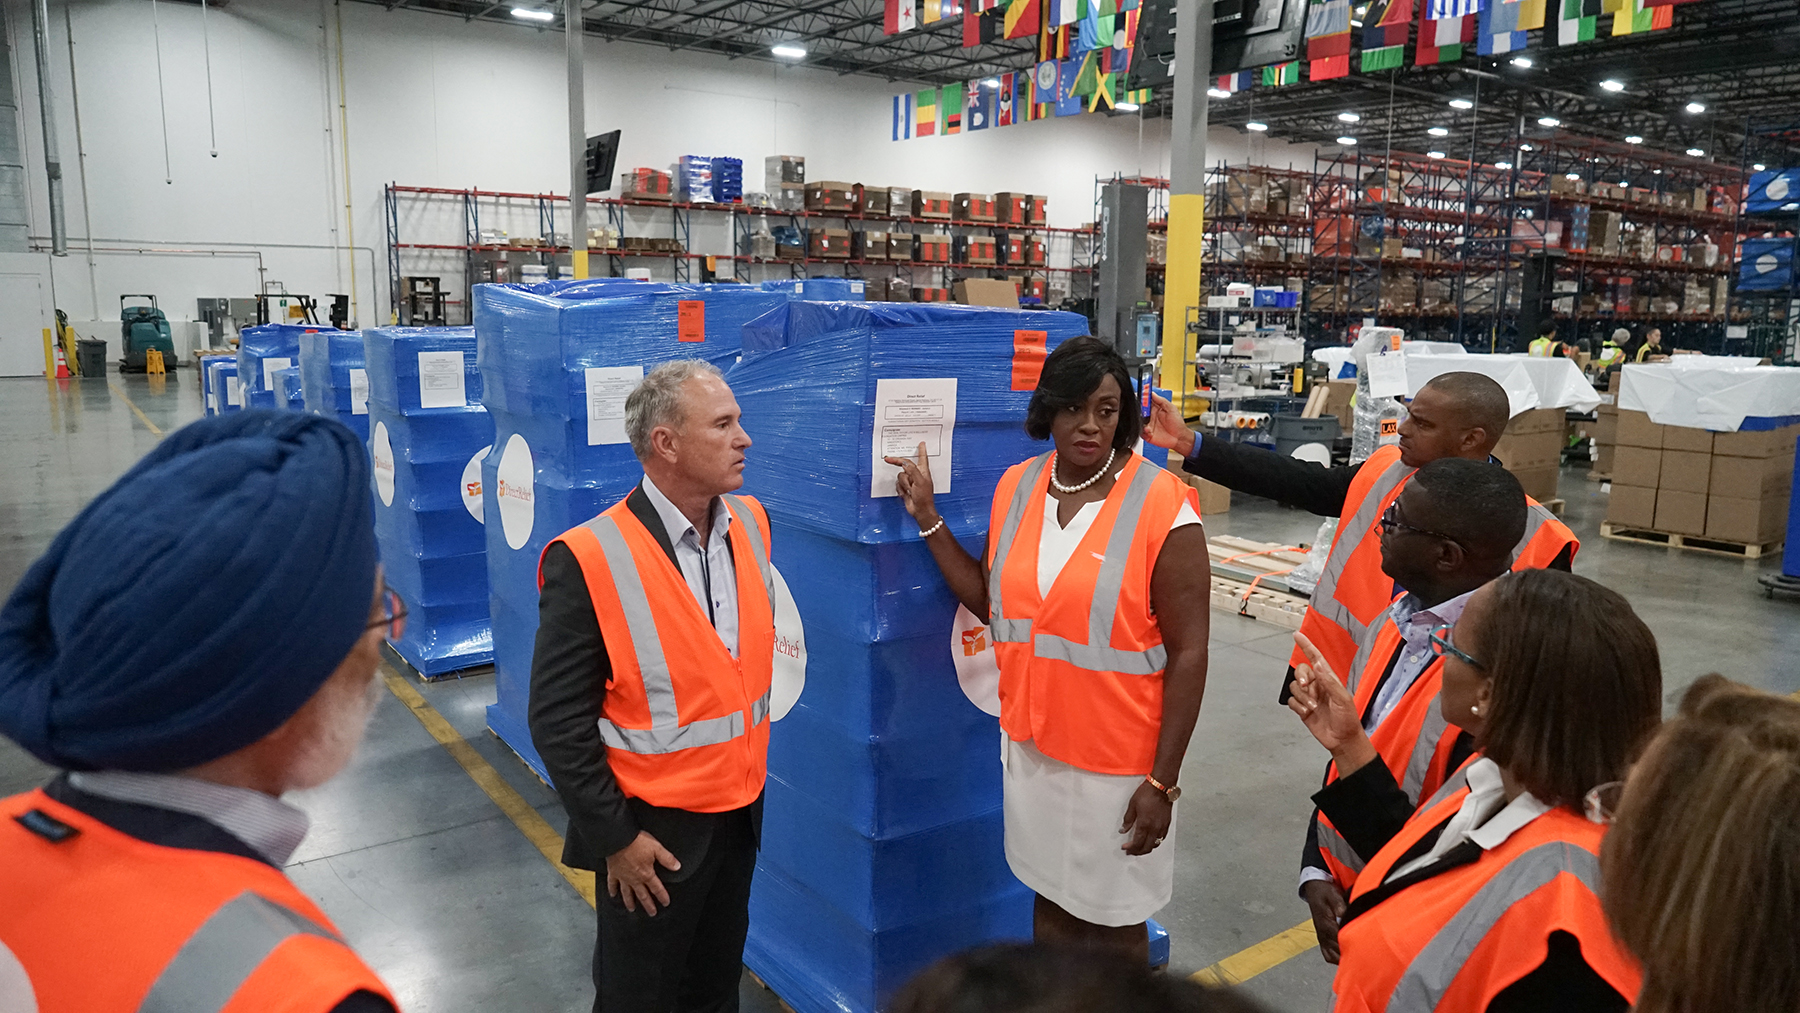 Jamaica's First Lady Juliet Holness with an outgoing shipment of medical aid departing for Jamaica from Direct Relief's warehouse. (Lara Cooper/Direct Relief)